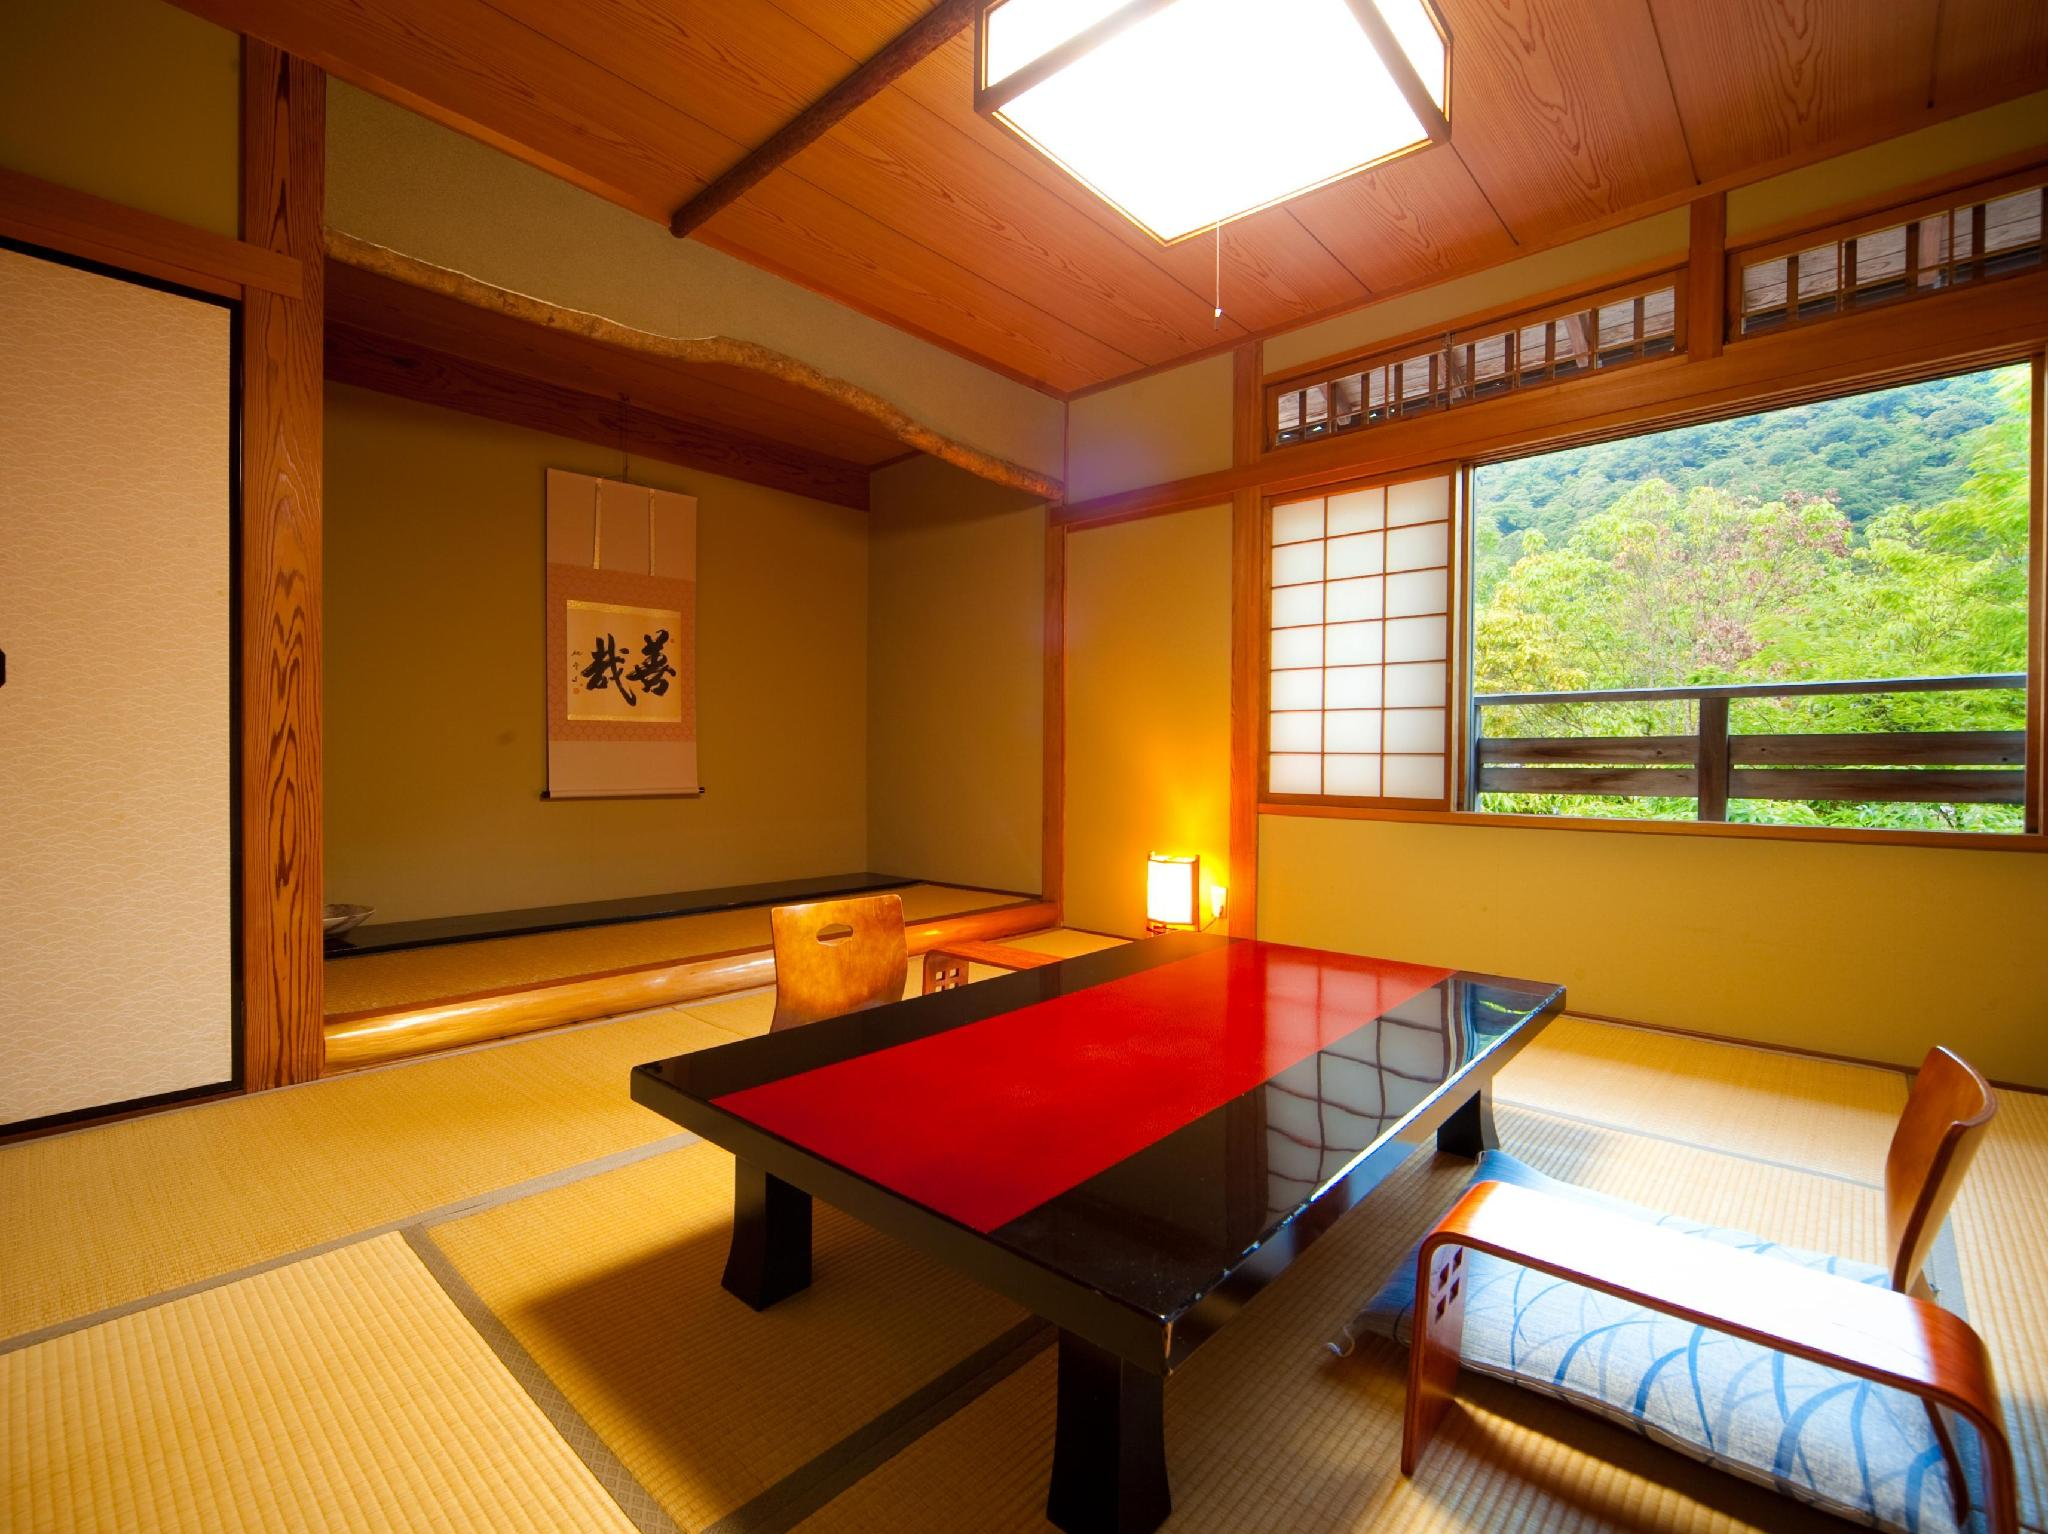 2nd Floor 2-Room Japanese Style Unit with 8 and 6 Tatami - Adult Only